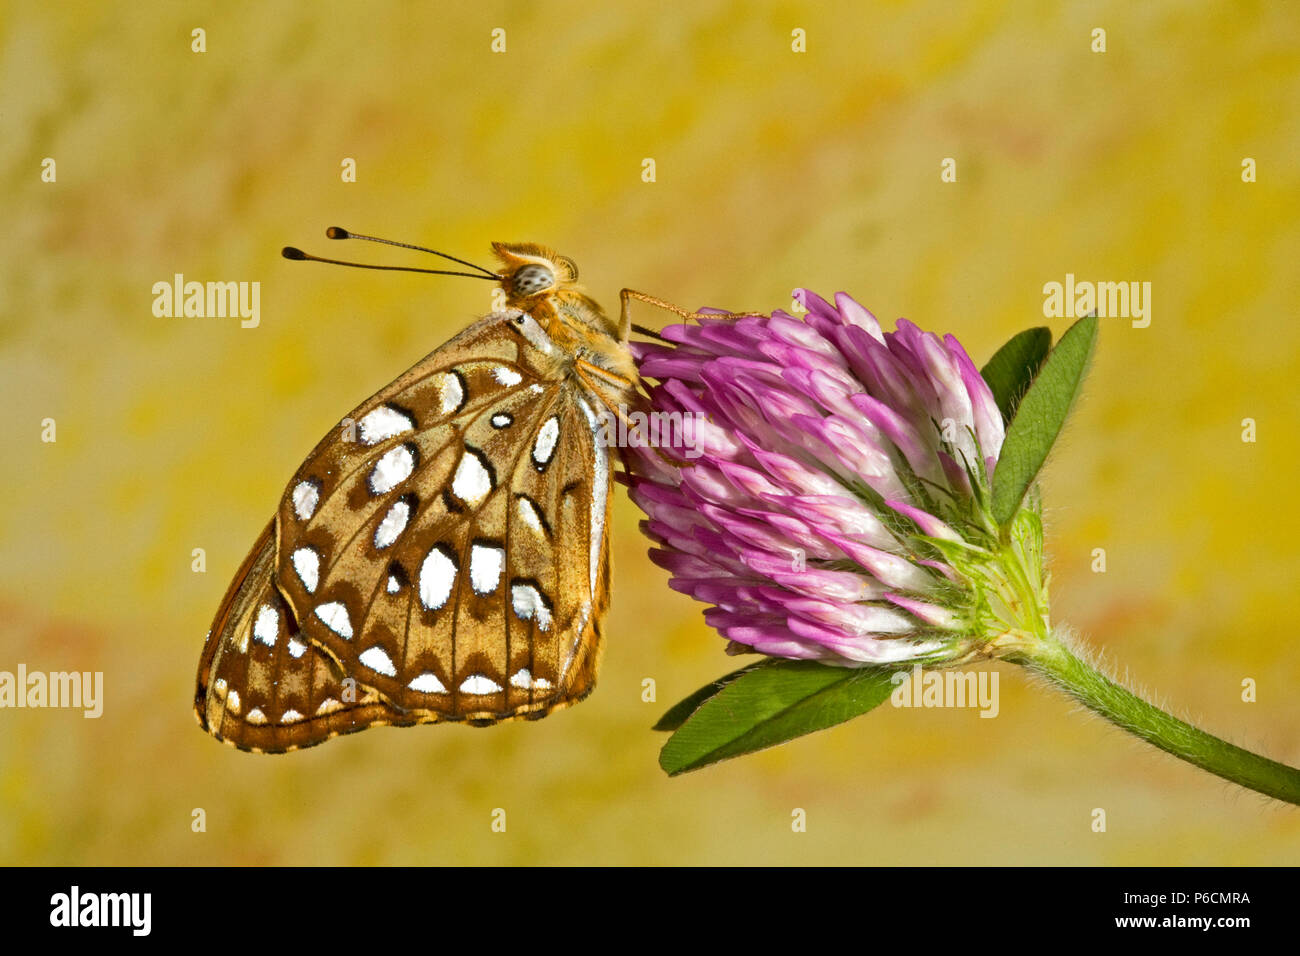 Portrait of a zerene fritillary butterfly, Speyeria zerene, on a wildflower in the Metolius basin of central Oregon. Stock Photo